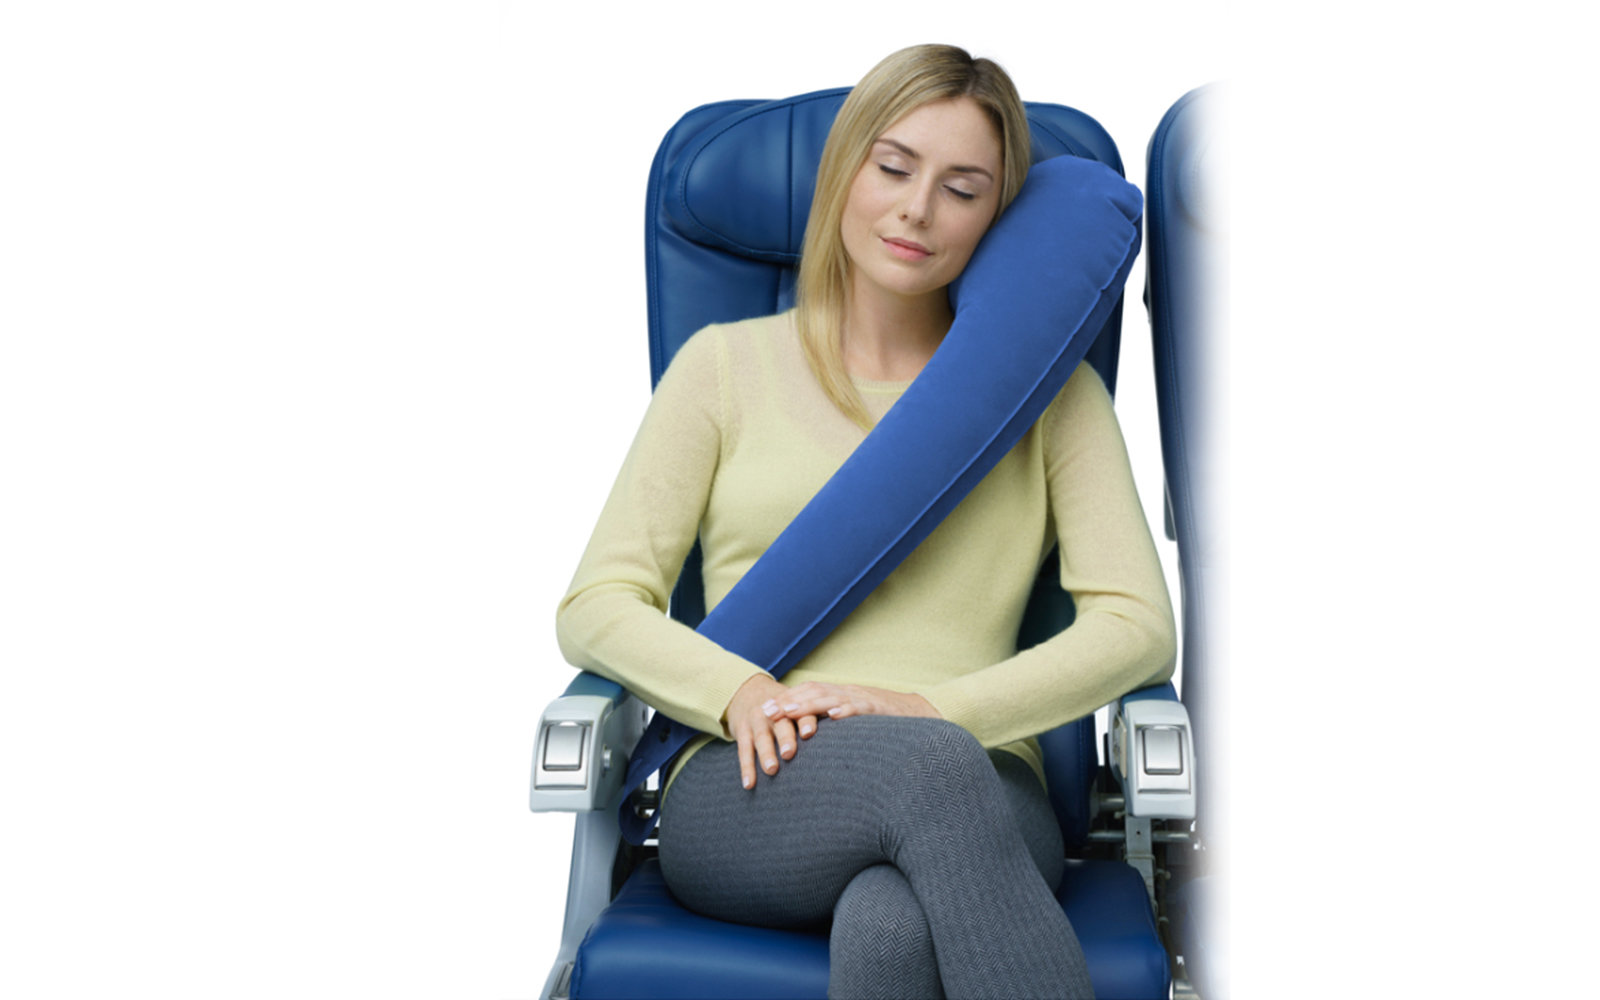 best travel neck pillow 14 Best Travel Pillows   Neck Support for the Airplane | Travel +  best travel neck pillow